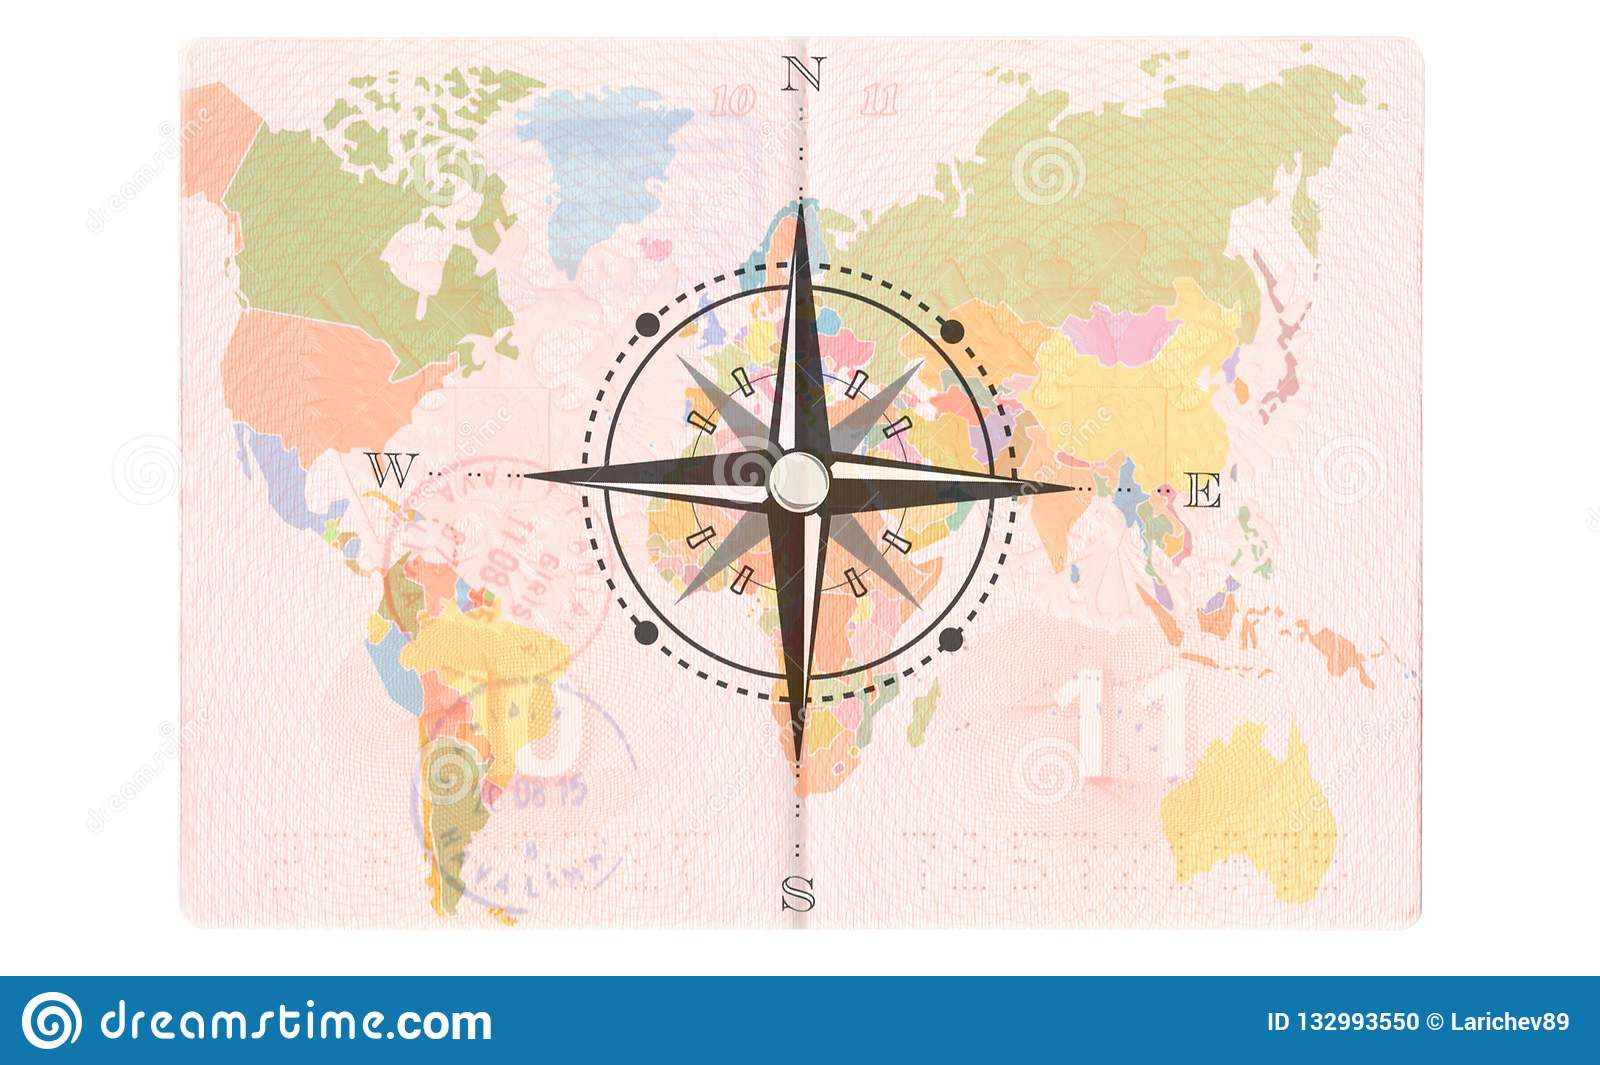 Compass Rose In The Passport World Map Travel Concept Stock Photo